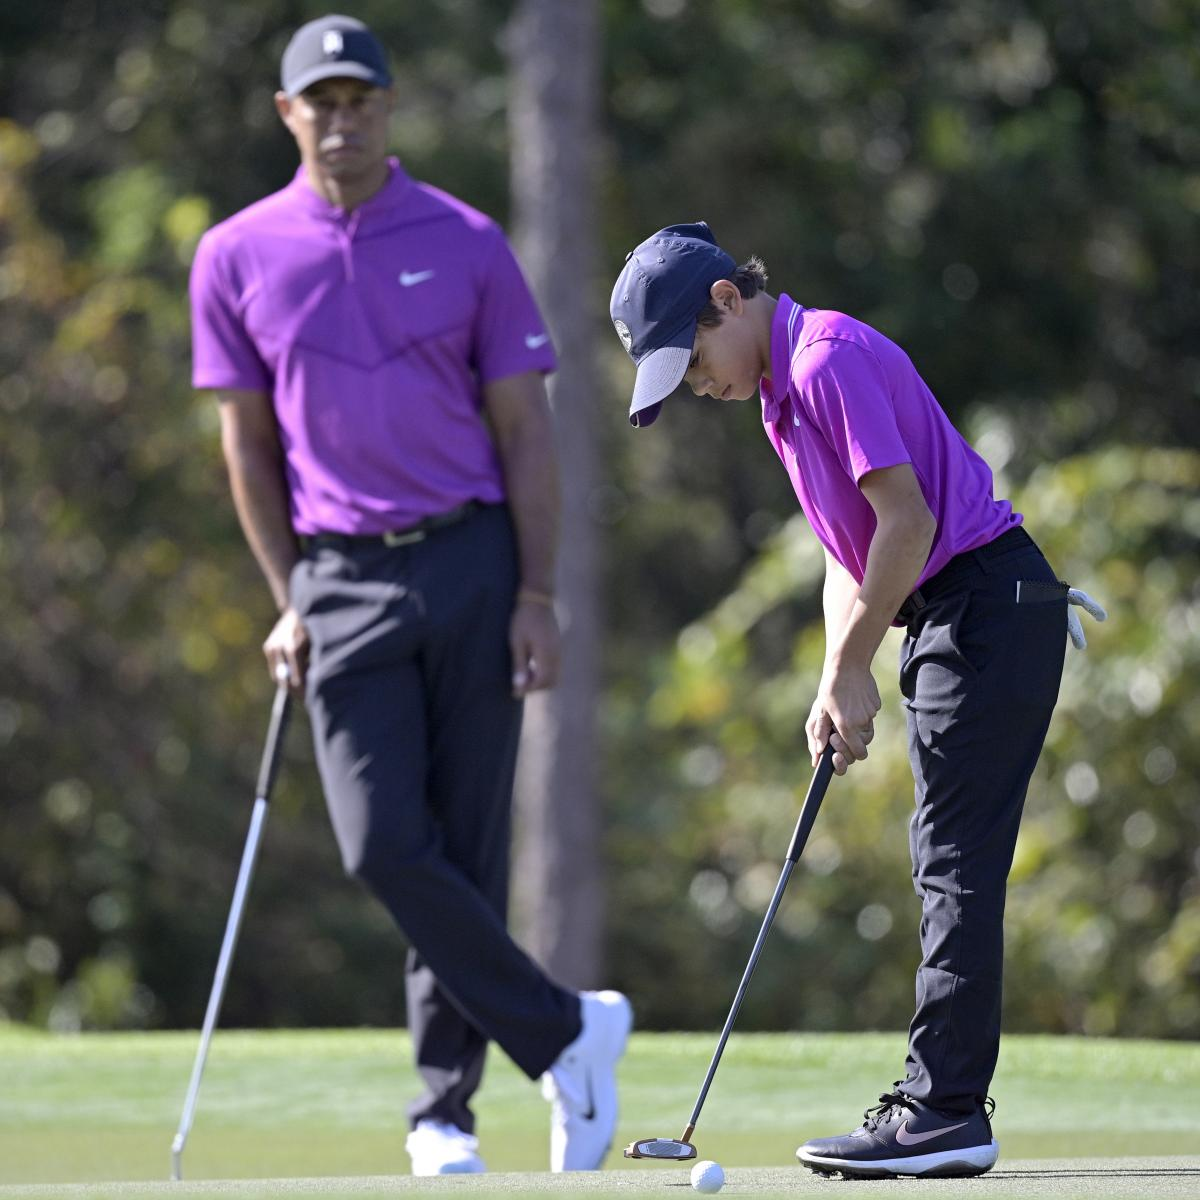 Tiger Woods, Son Charlie Shoot 10 Under in Opening Round of PNC Championship